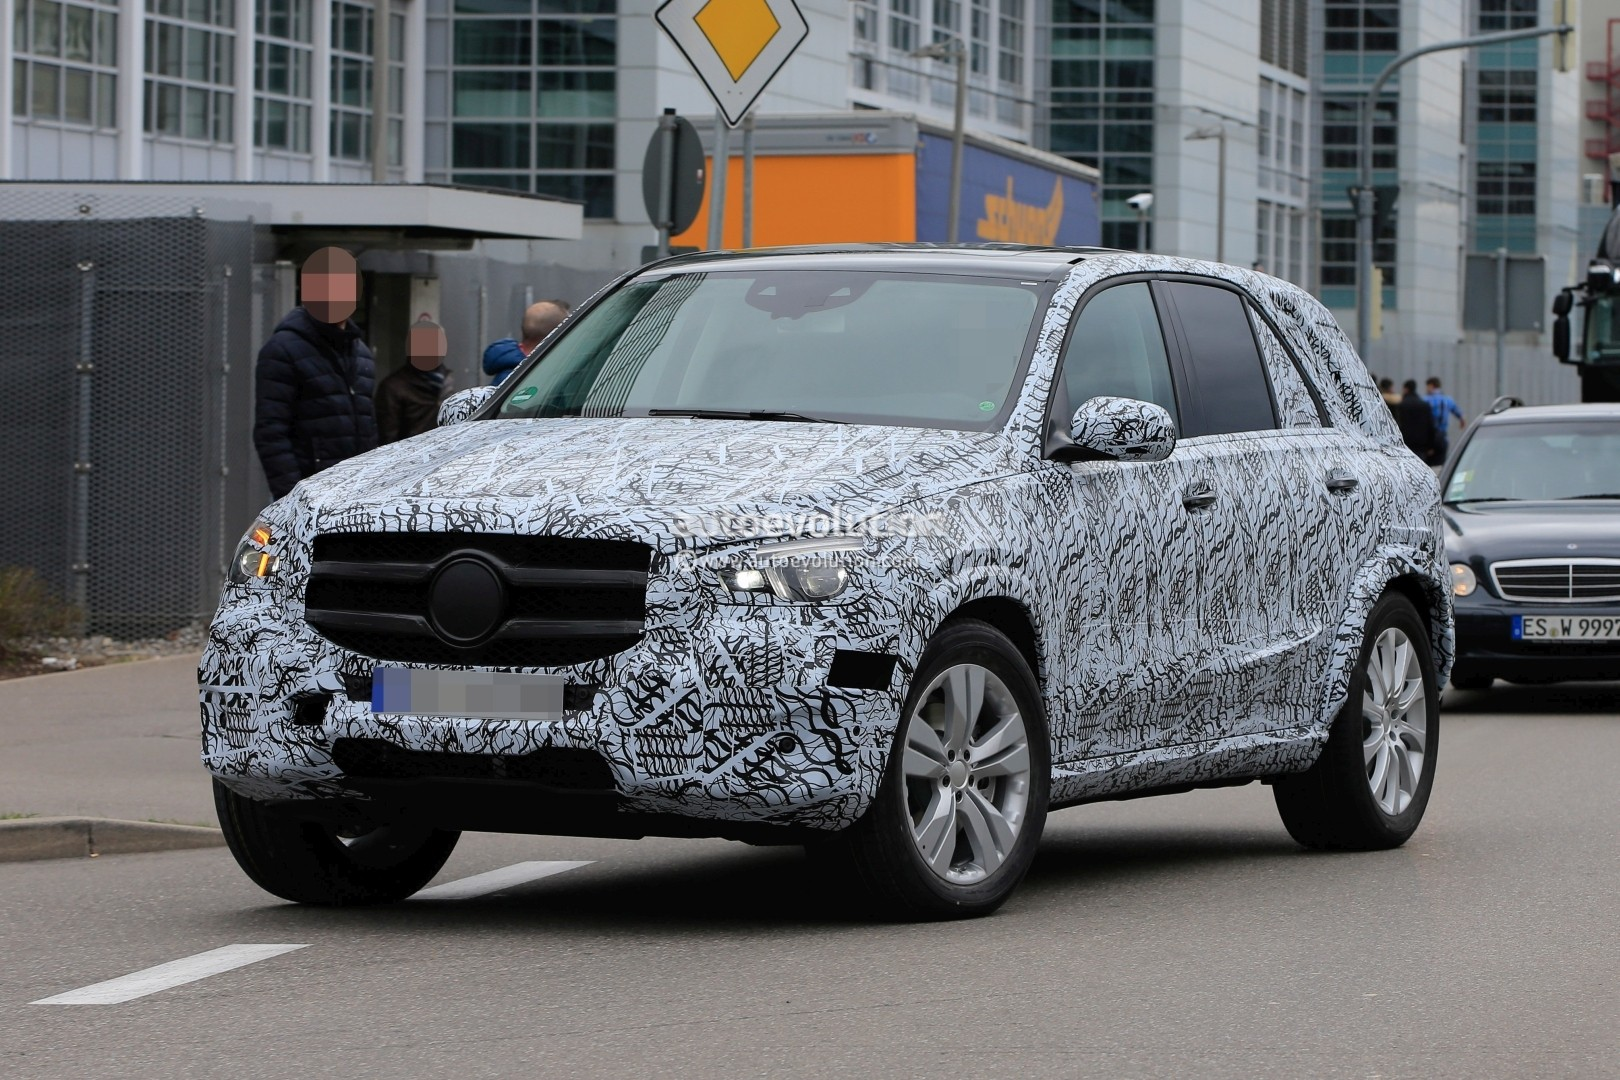 2019 mercedes benz gle spied inside and out dashboard shows new square vents autoevolution. Black Bedroom Furniture Sets. Home Design Ideas